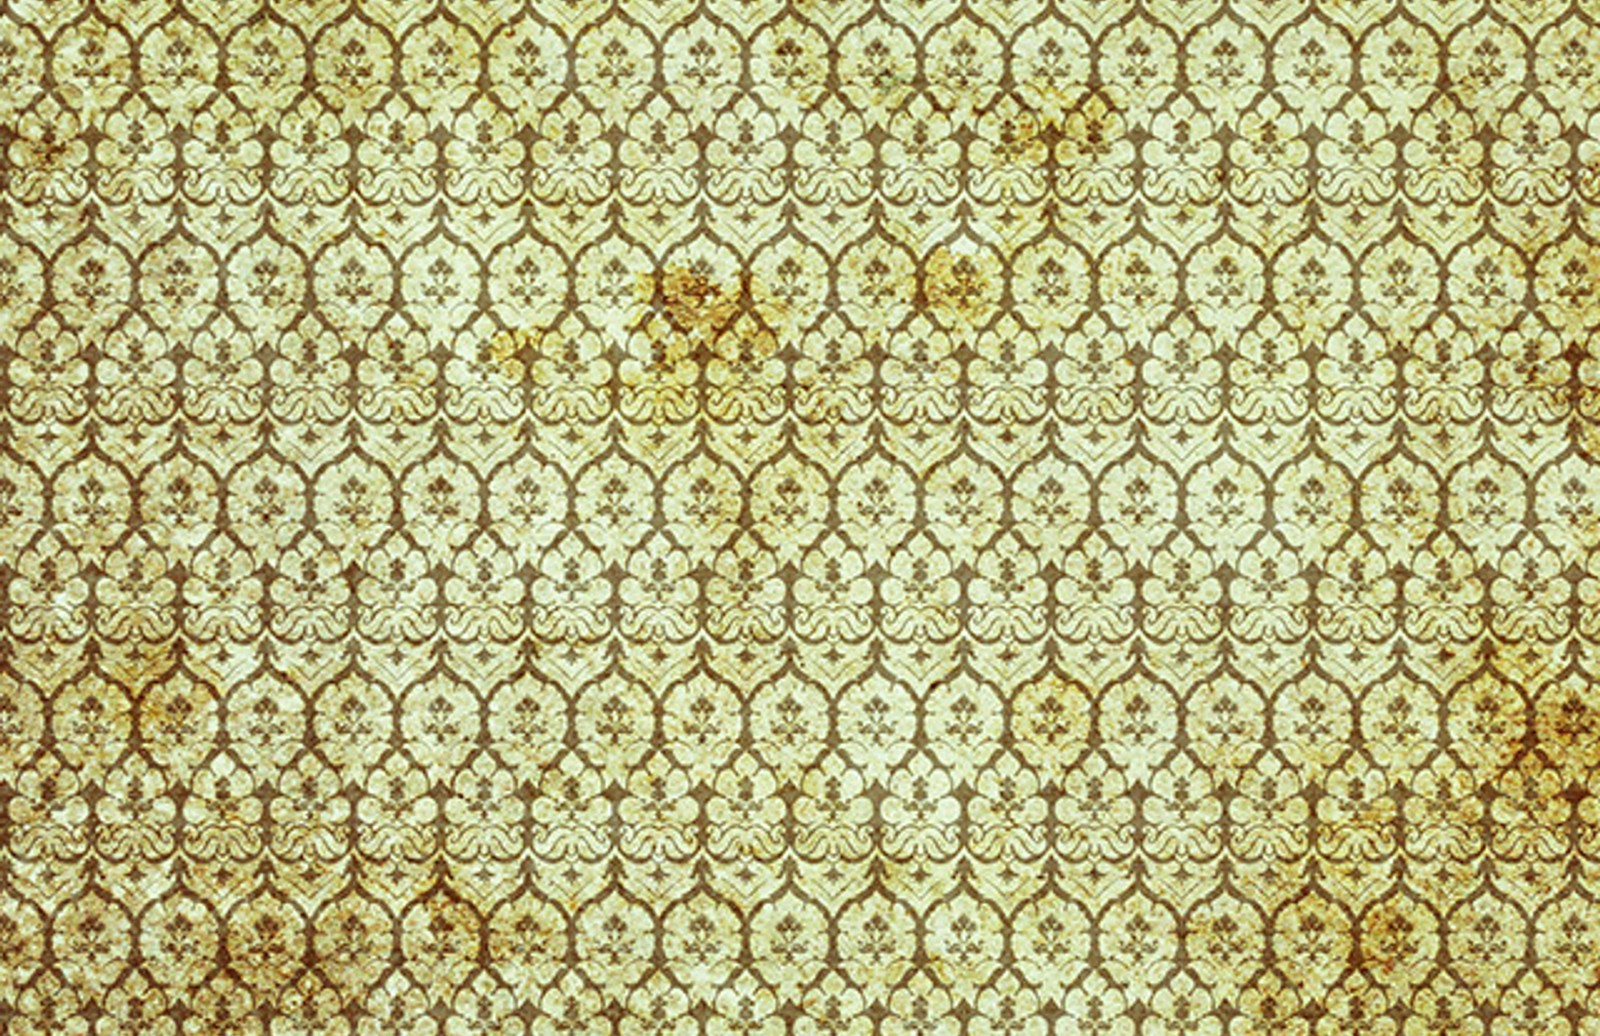 Vintage  Baroque  Textures  Vol 2  Preview1